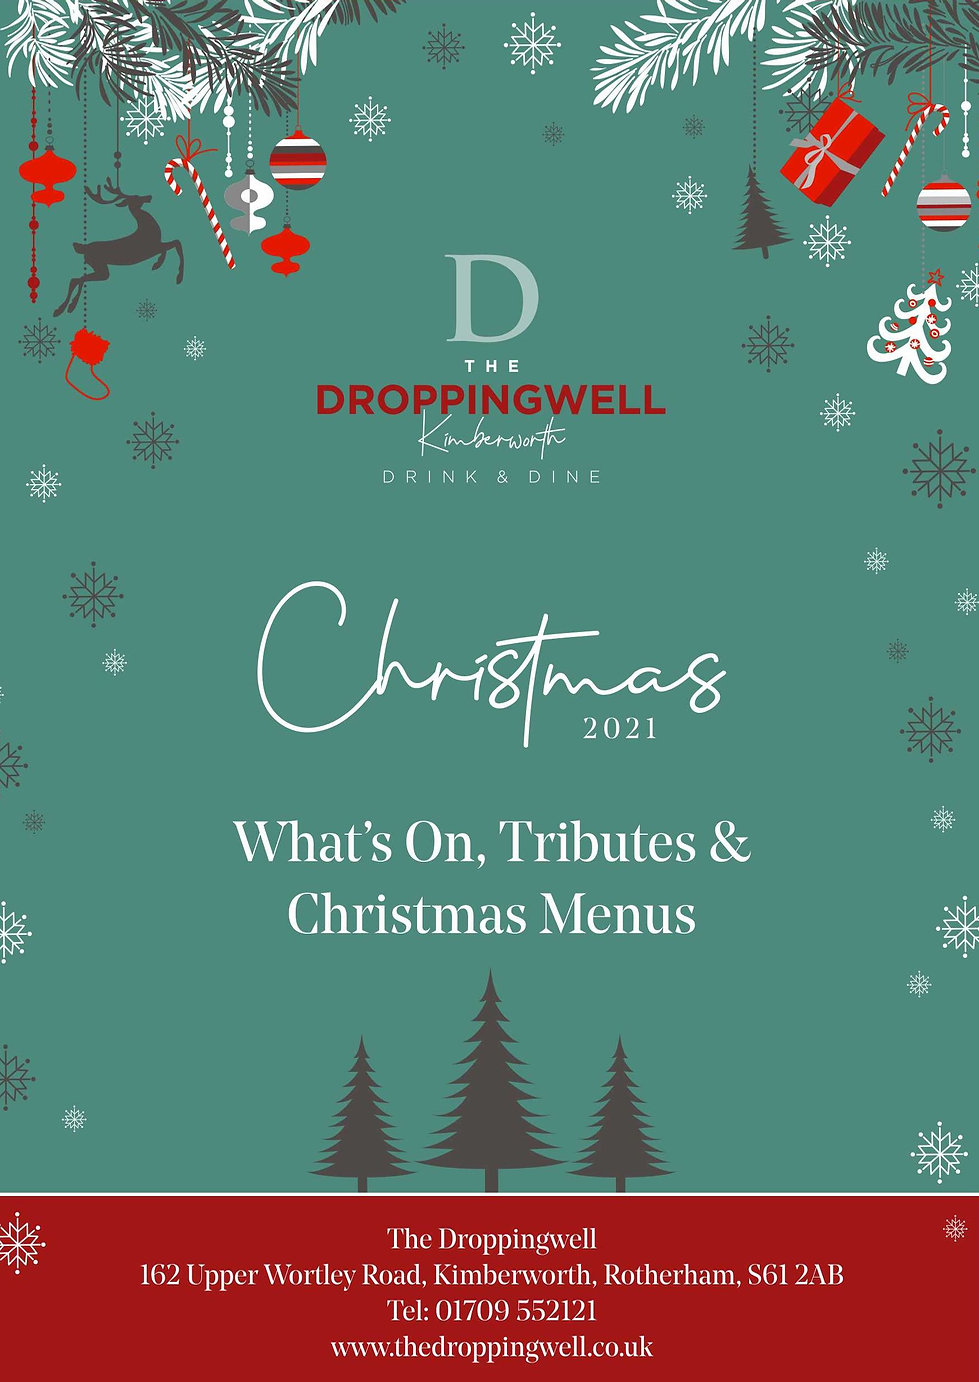 Droppingwell xmas booklet outer - Copy.jpg